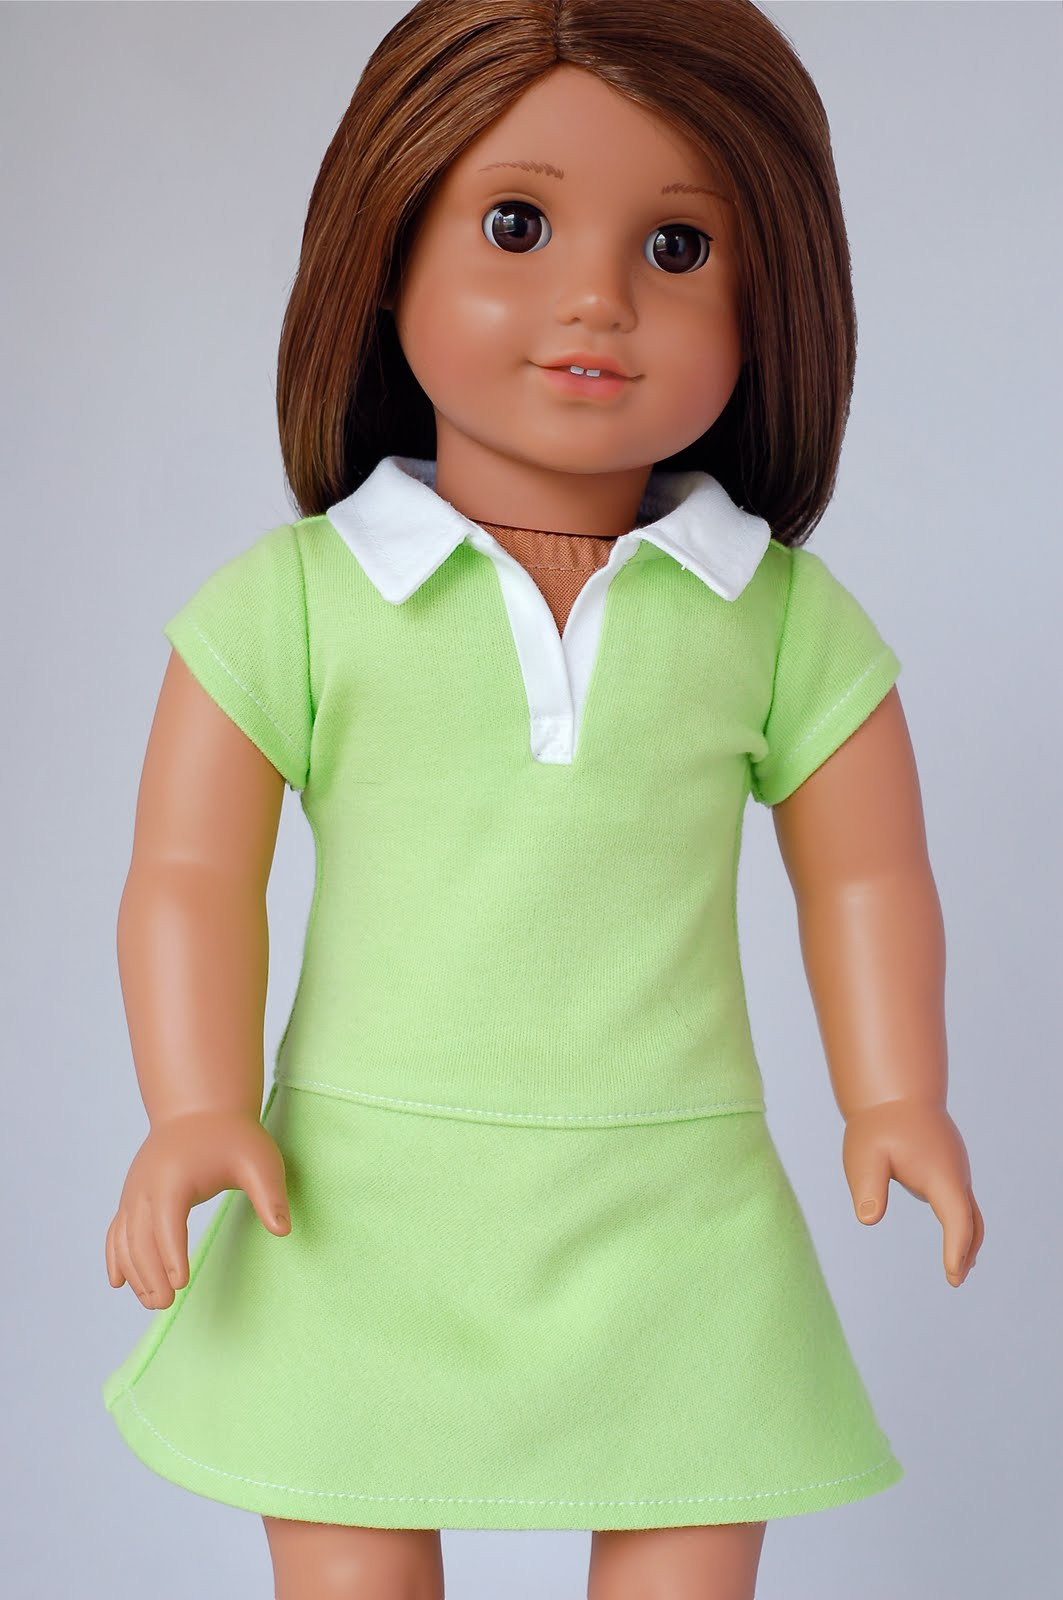 American Girl Doll Clothes Pattern Polo Shirt Dress